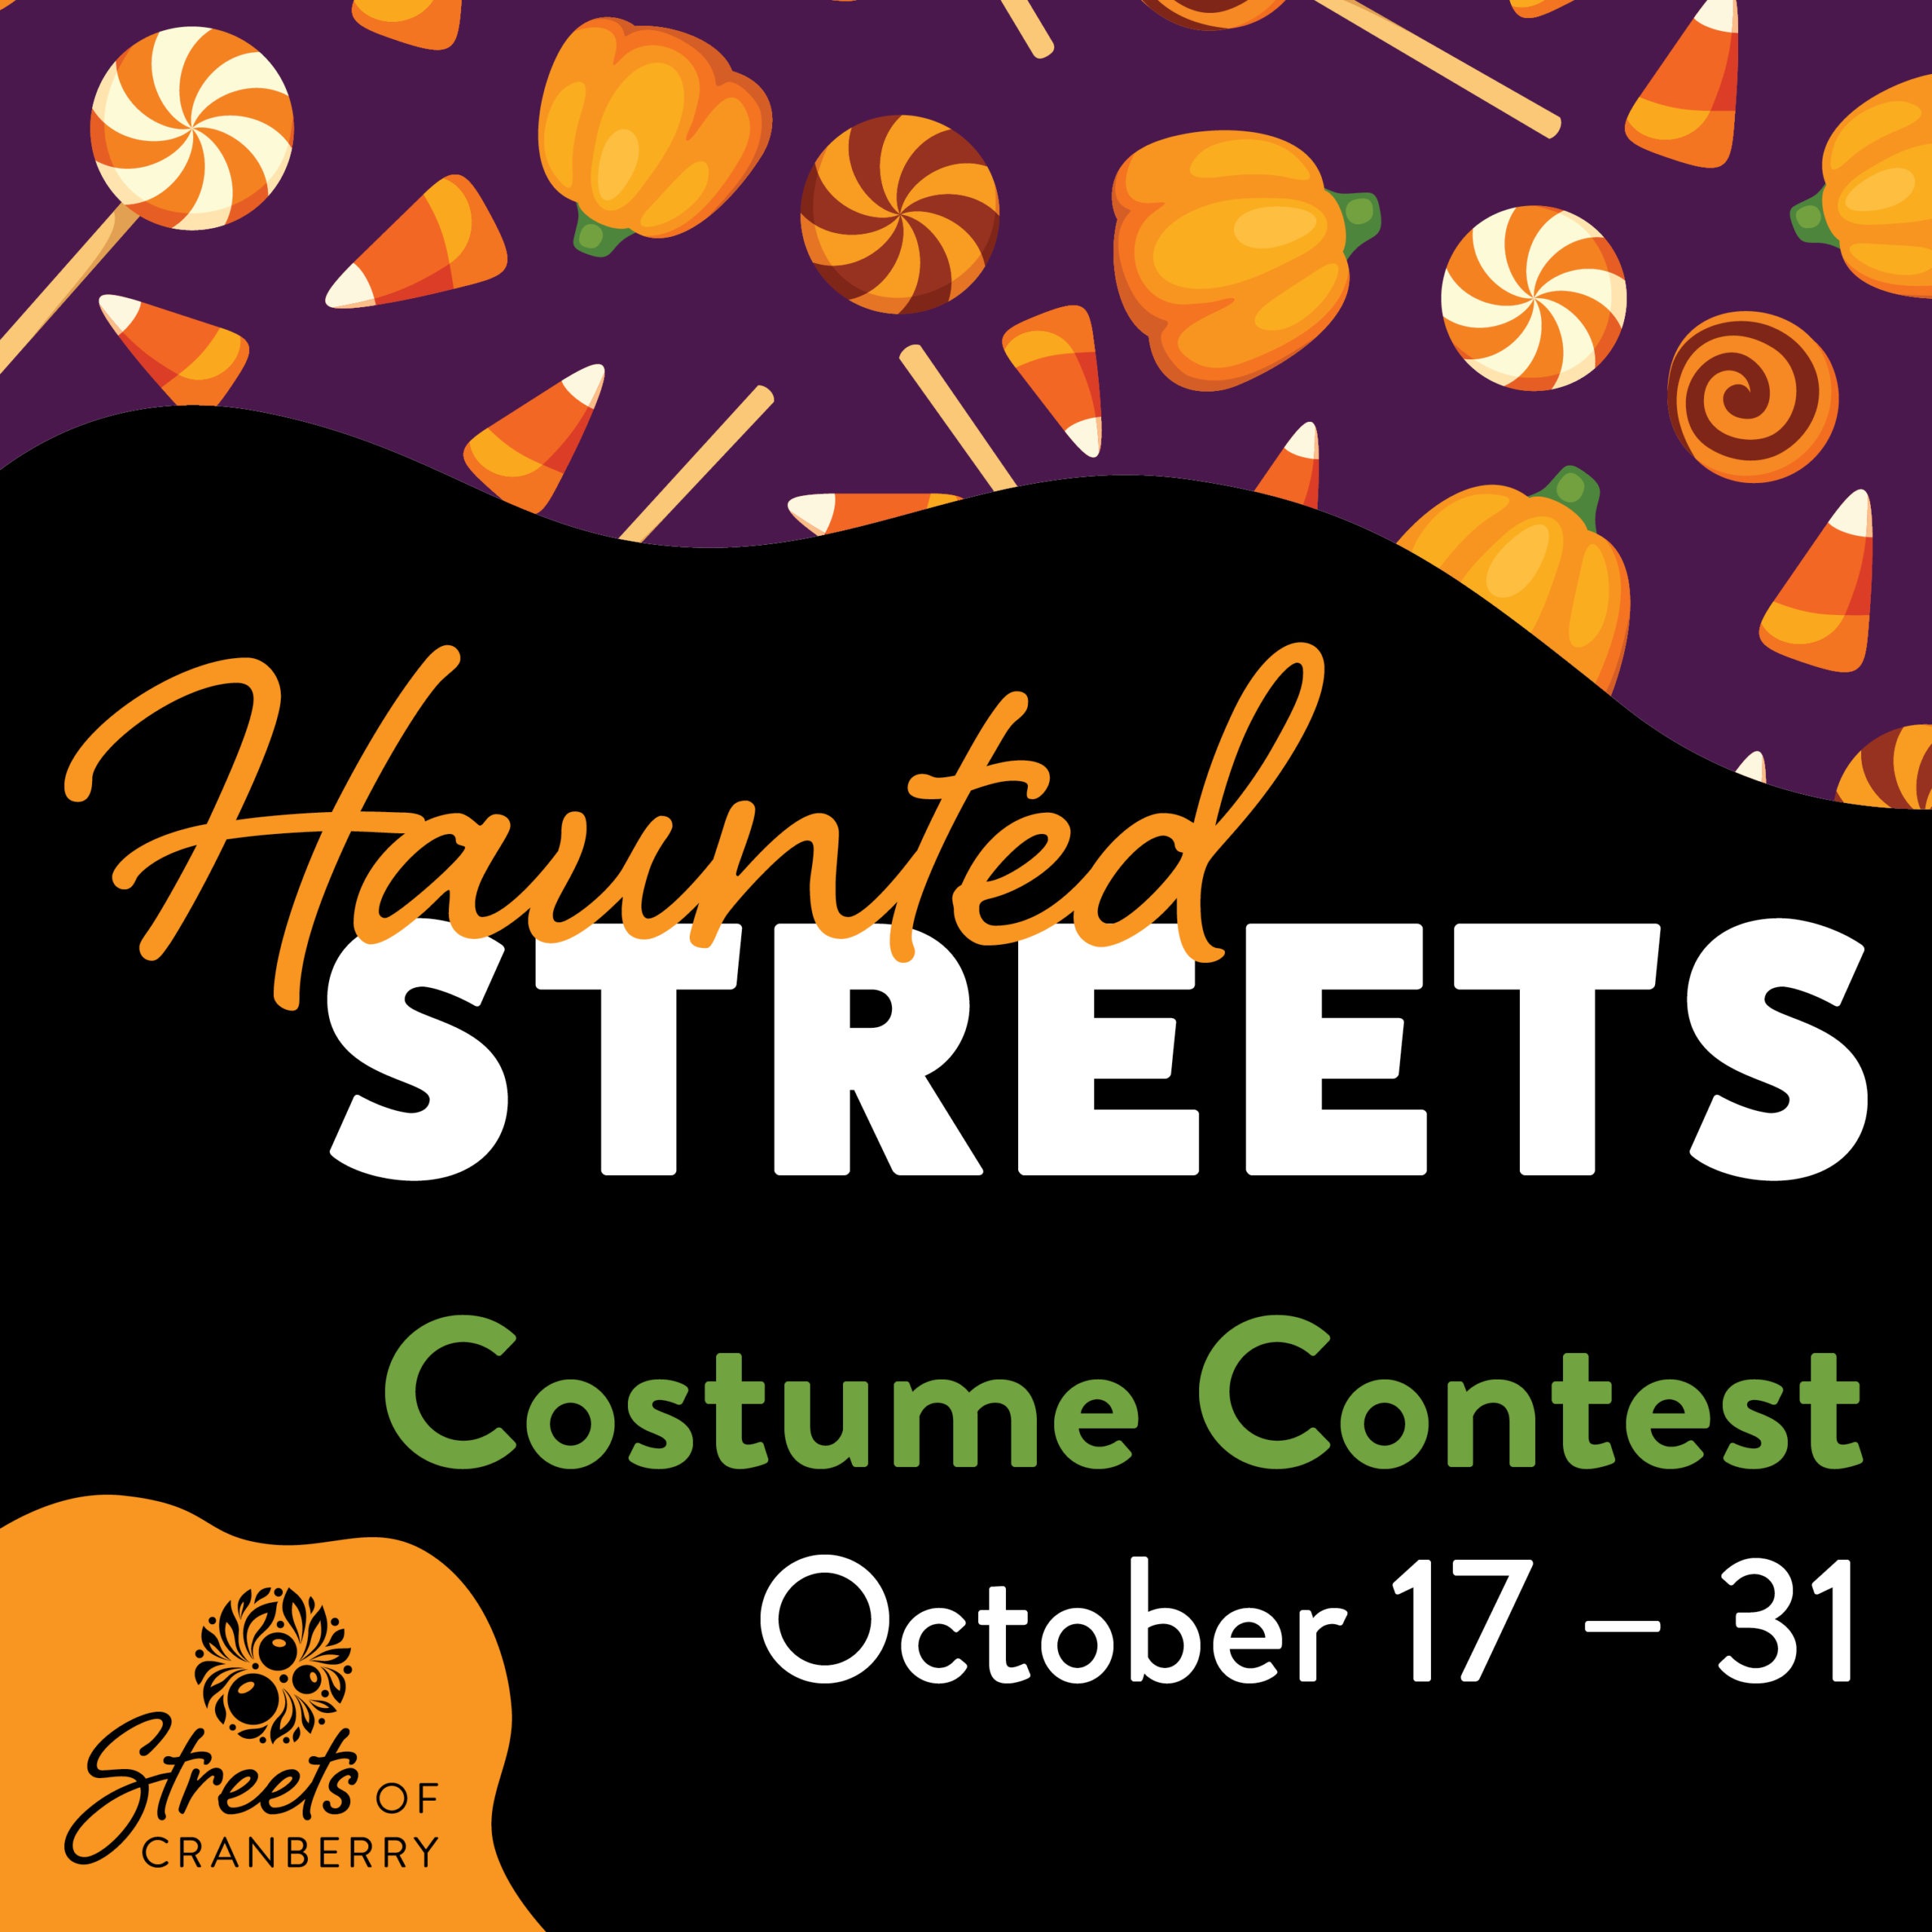 Enter our Halloween Haunted Streets Costume Contest